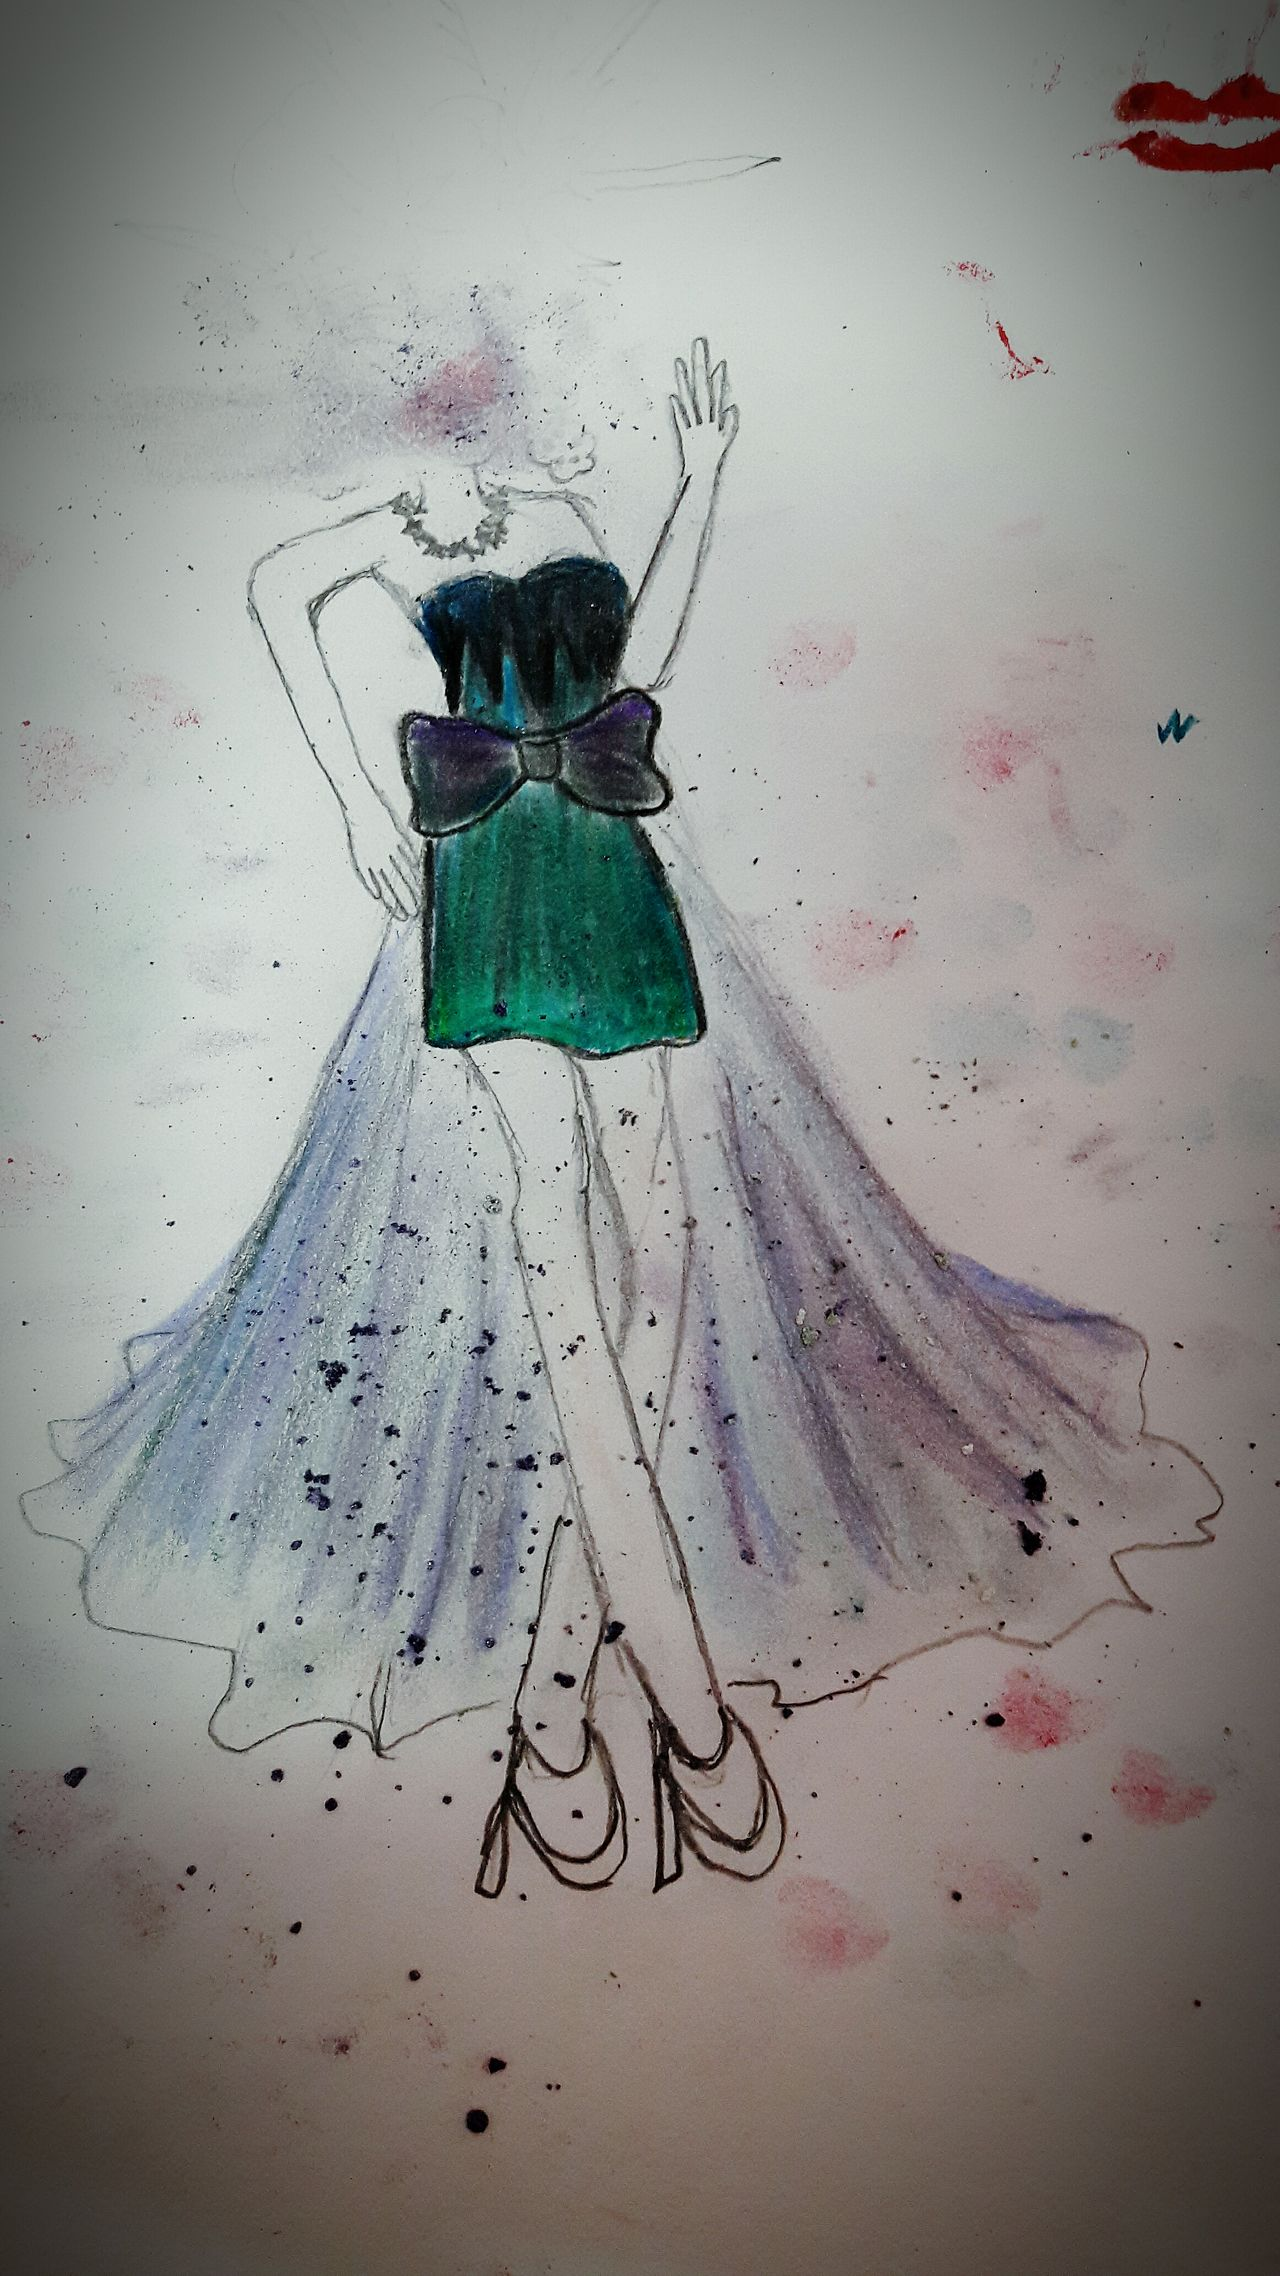 Nobody perfect Fashion Design Drawn Dreamsinderelladesign Green Color Day Concrete Nature Outdoors Carefree Weathered Galaxy Starlight Galaxydress Mydesign